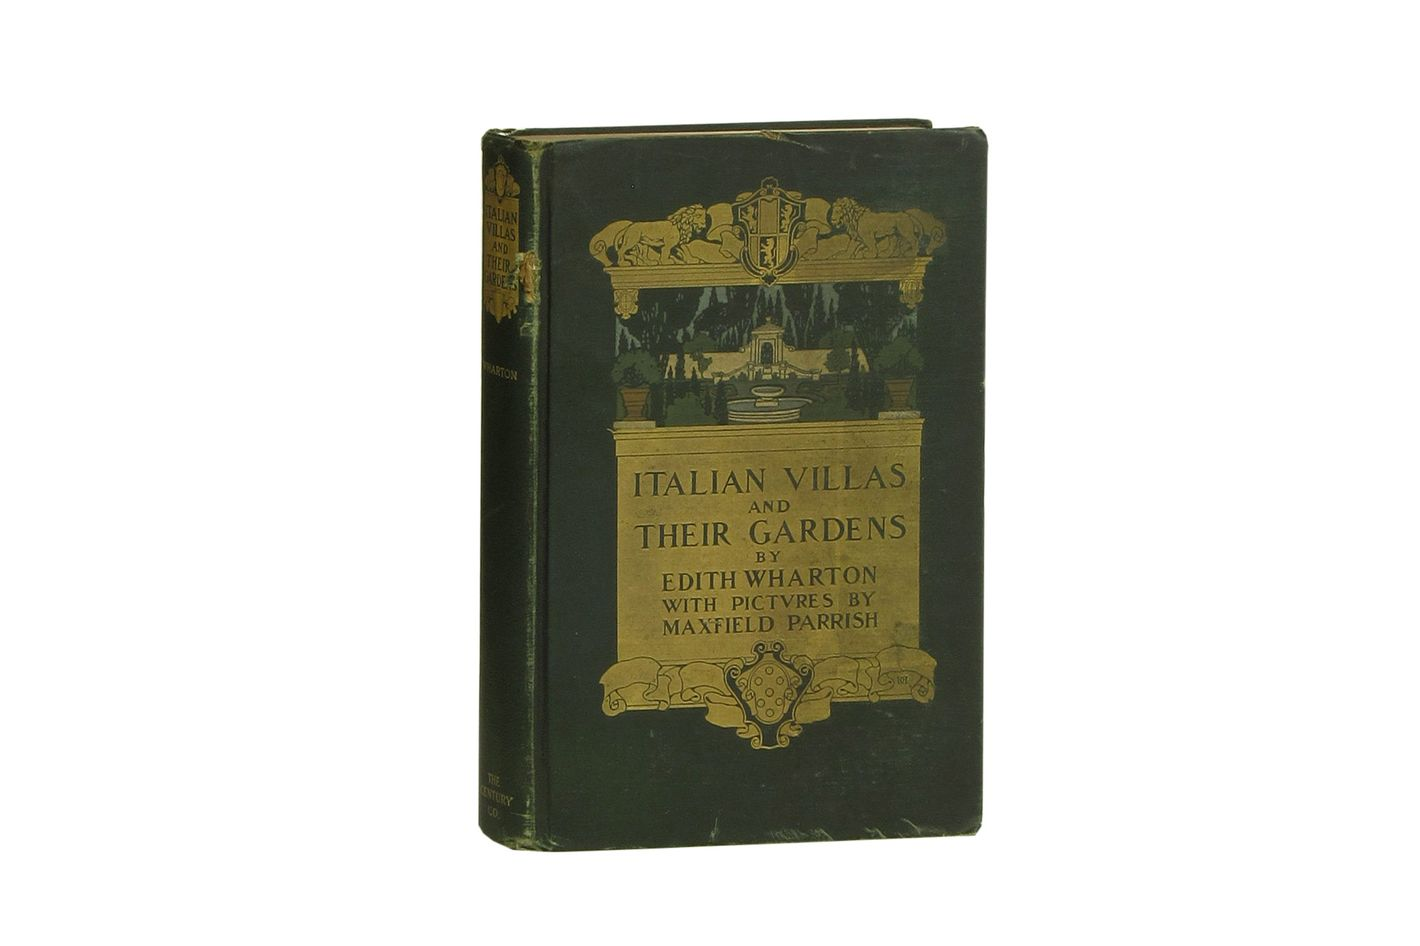 Italian Villas and Their Gardens by Edith Wharton and Maxfield Parrish